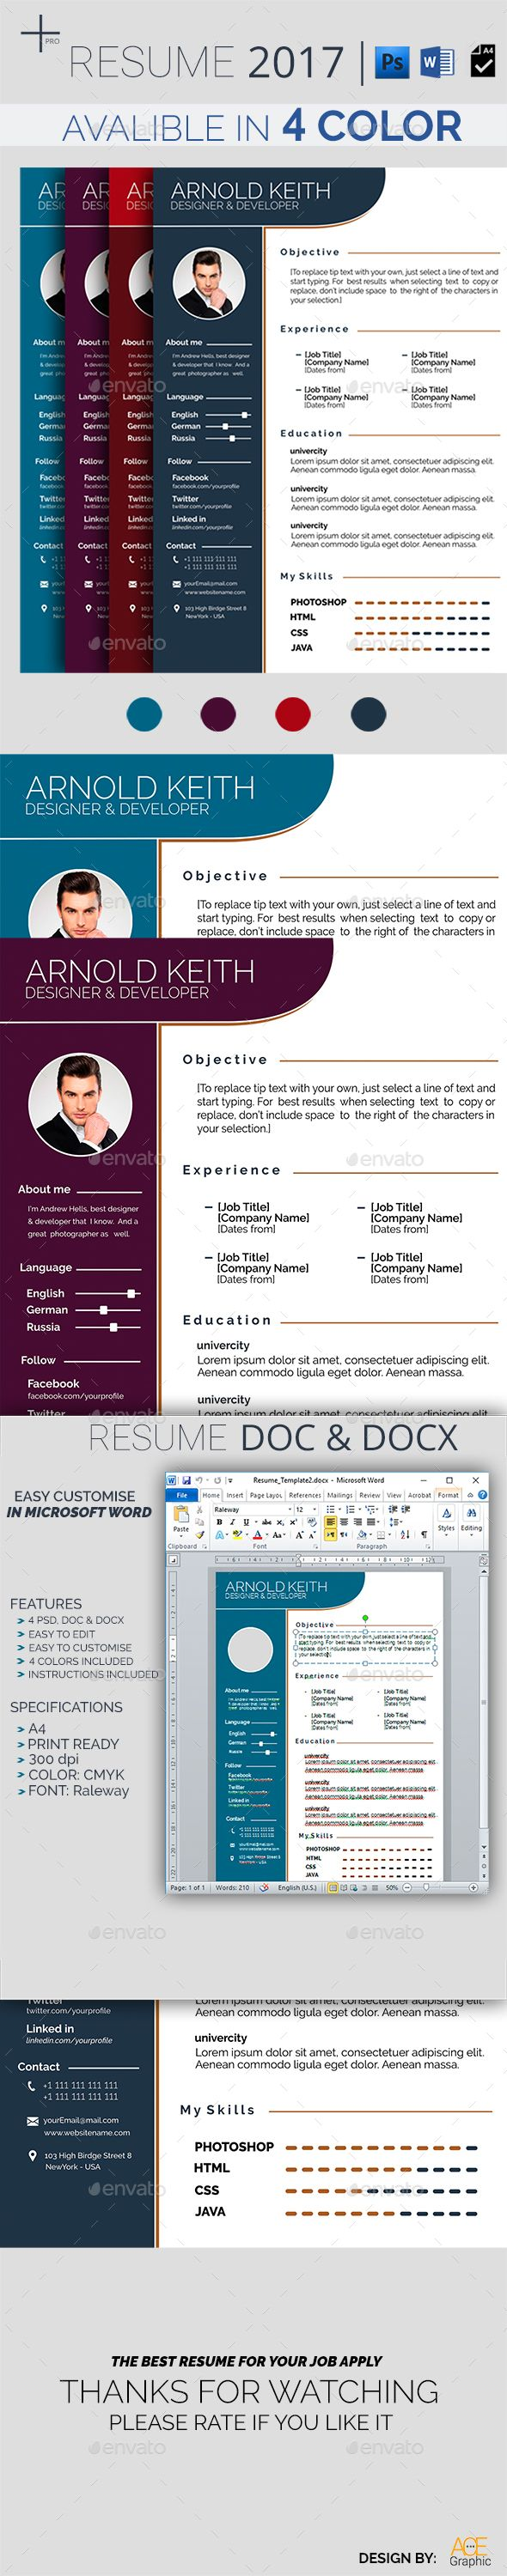 Microsoft Word 2007 Template For Resume%0A Resume by AceGraphic Features of Resume Template   Color Paper Size Quick  and easy to customize templatesChange Customize easily in MS WORD